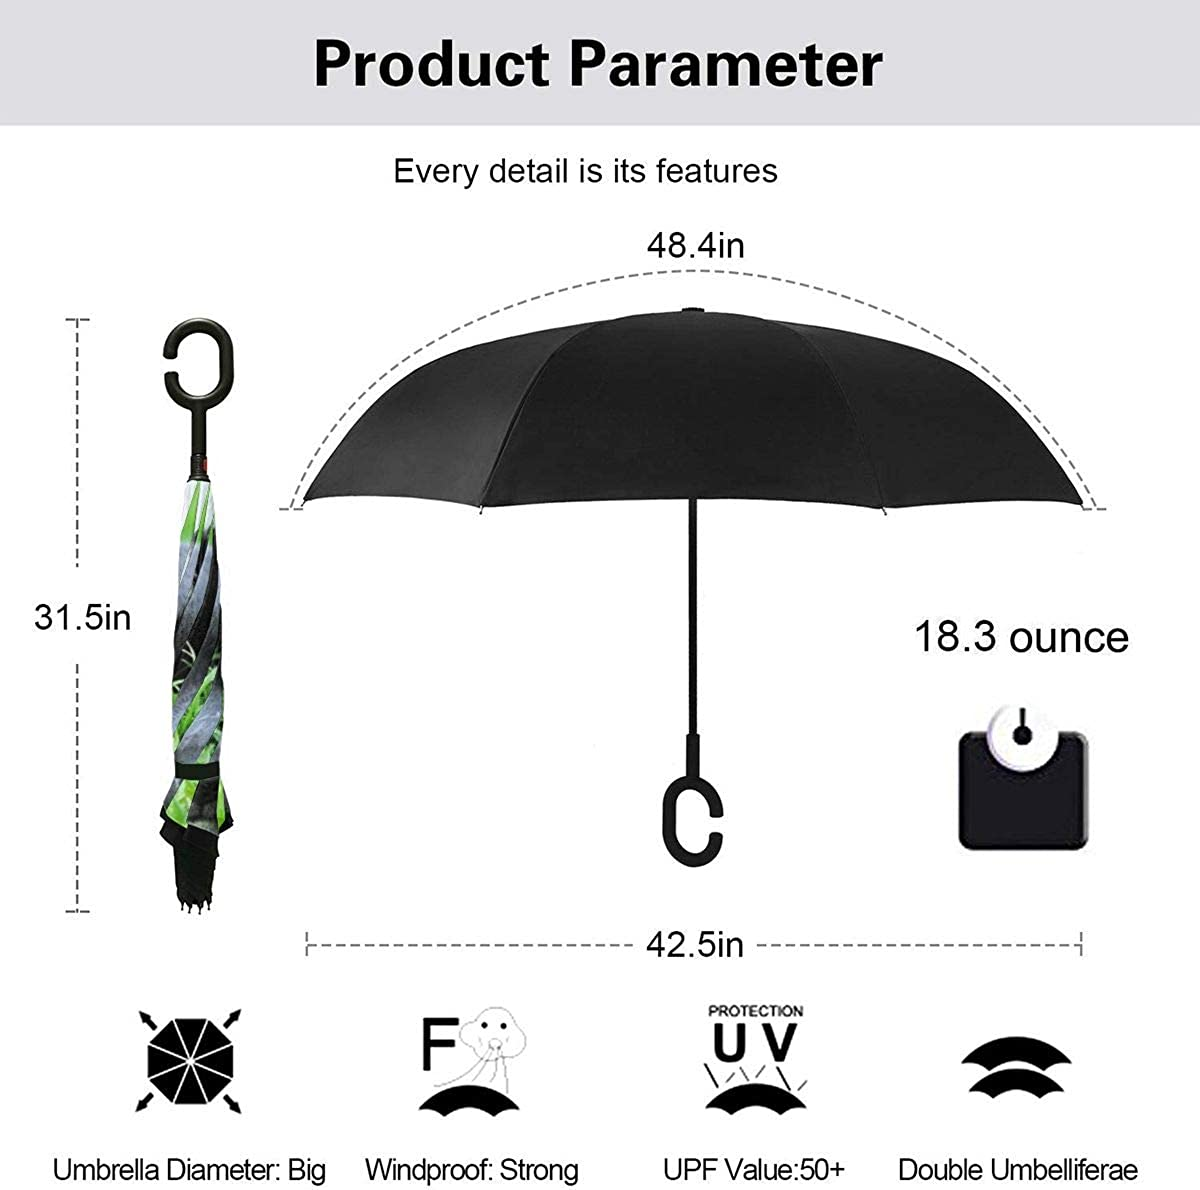 Reverse Umbrella Double Layer Inverted Umbrellas For Car Rain Outdoor With C-Shaped Handle Dog Young Dog Puppy Black Customized